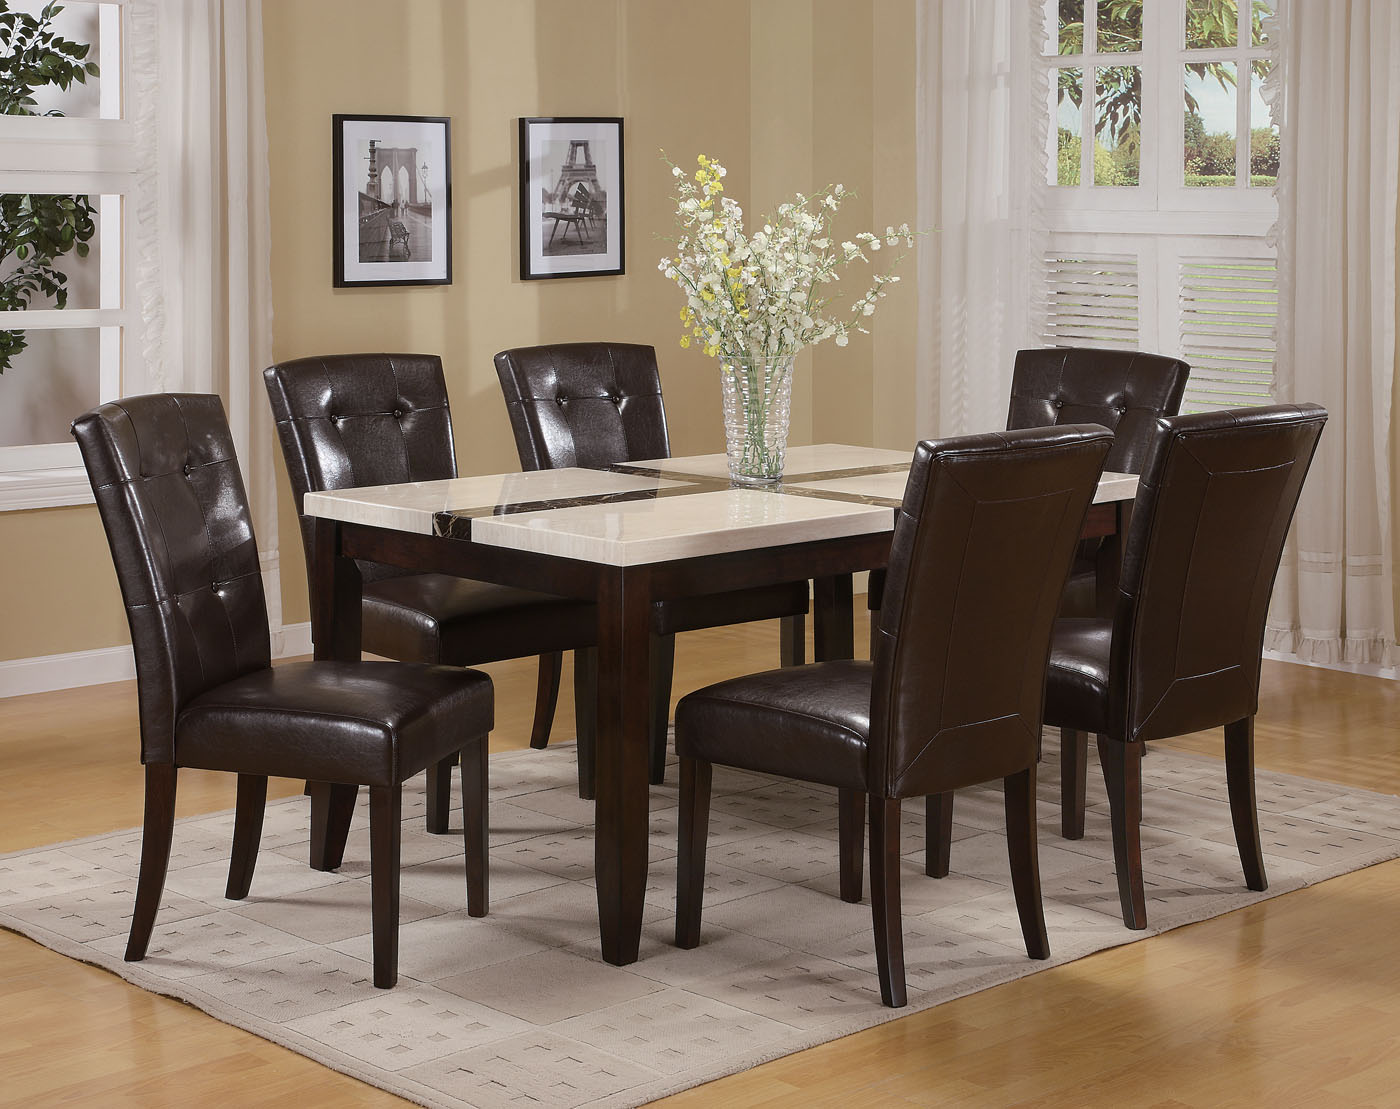 Acme Acme Justin White Faux Marble Top Dining Table Set In